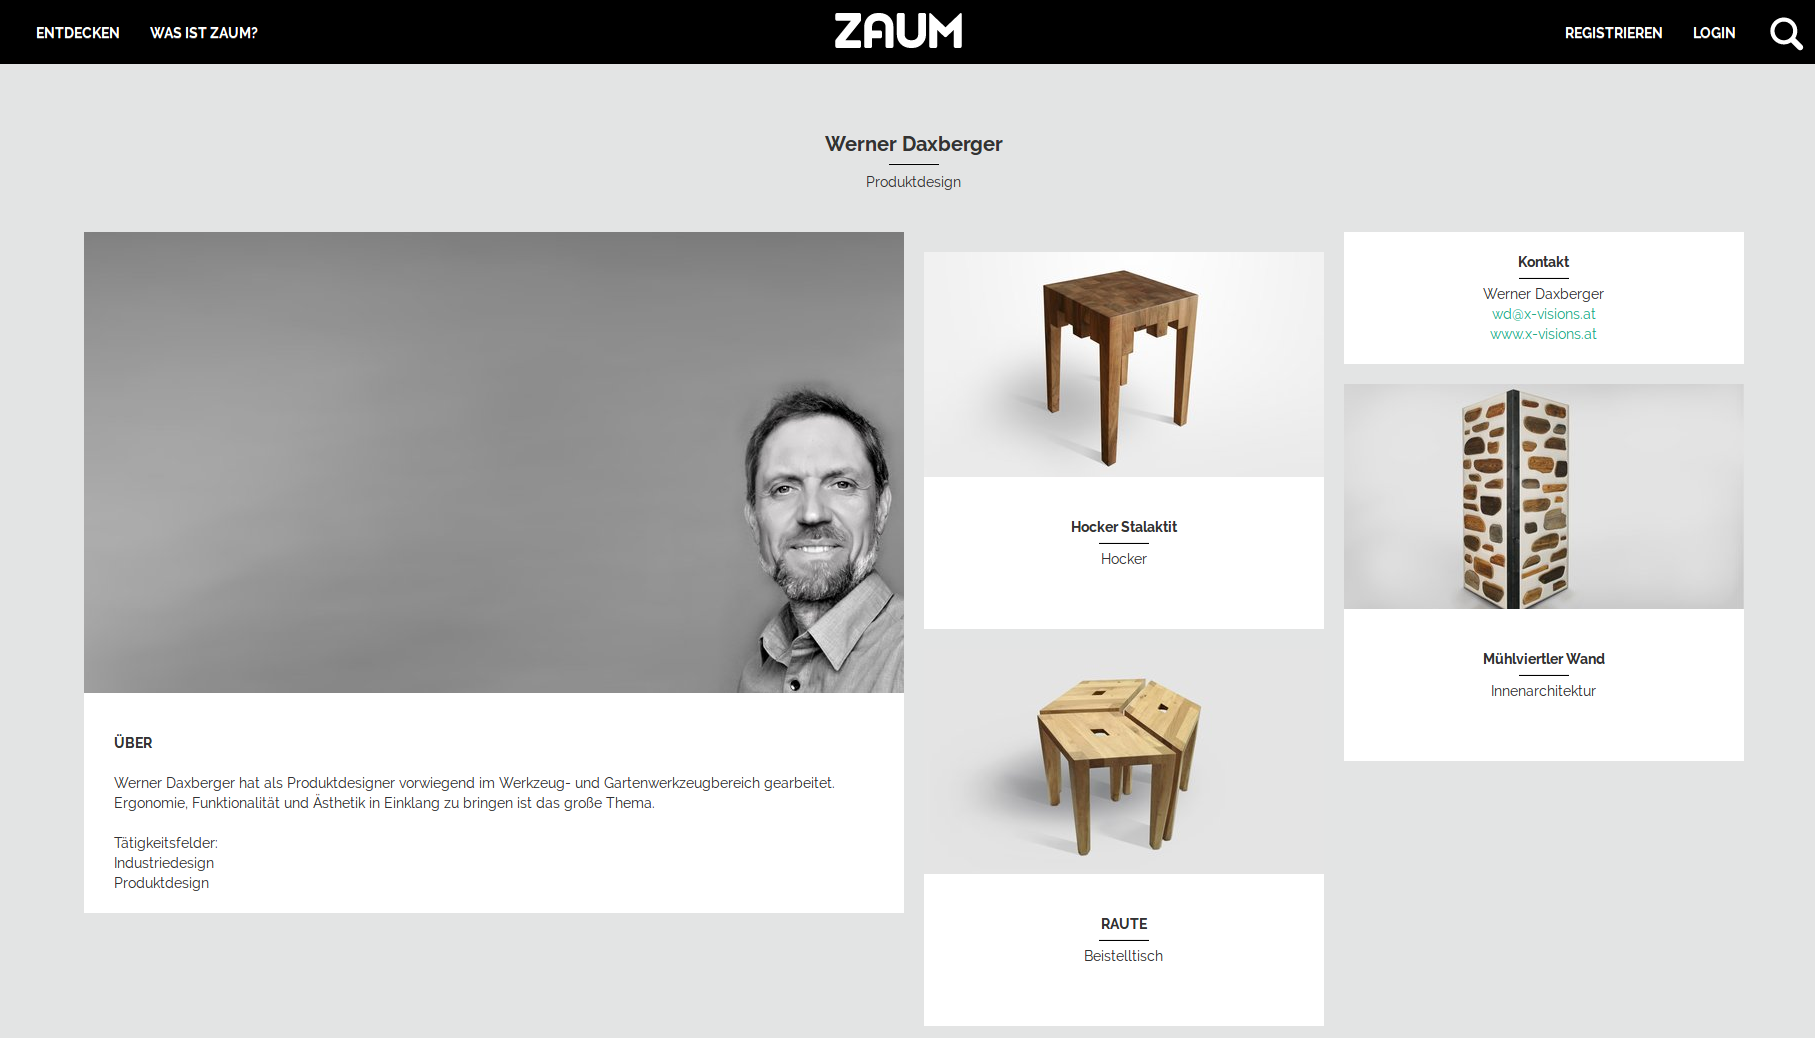 ZAUM online platform for presentation of products and ideas